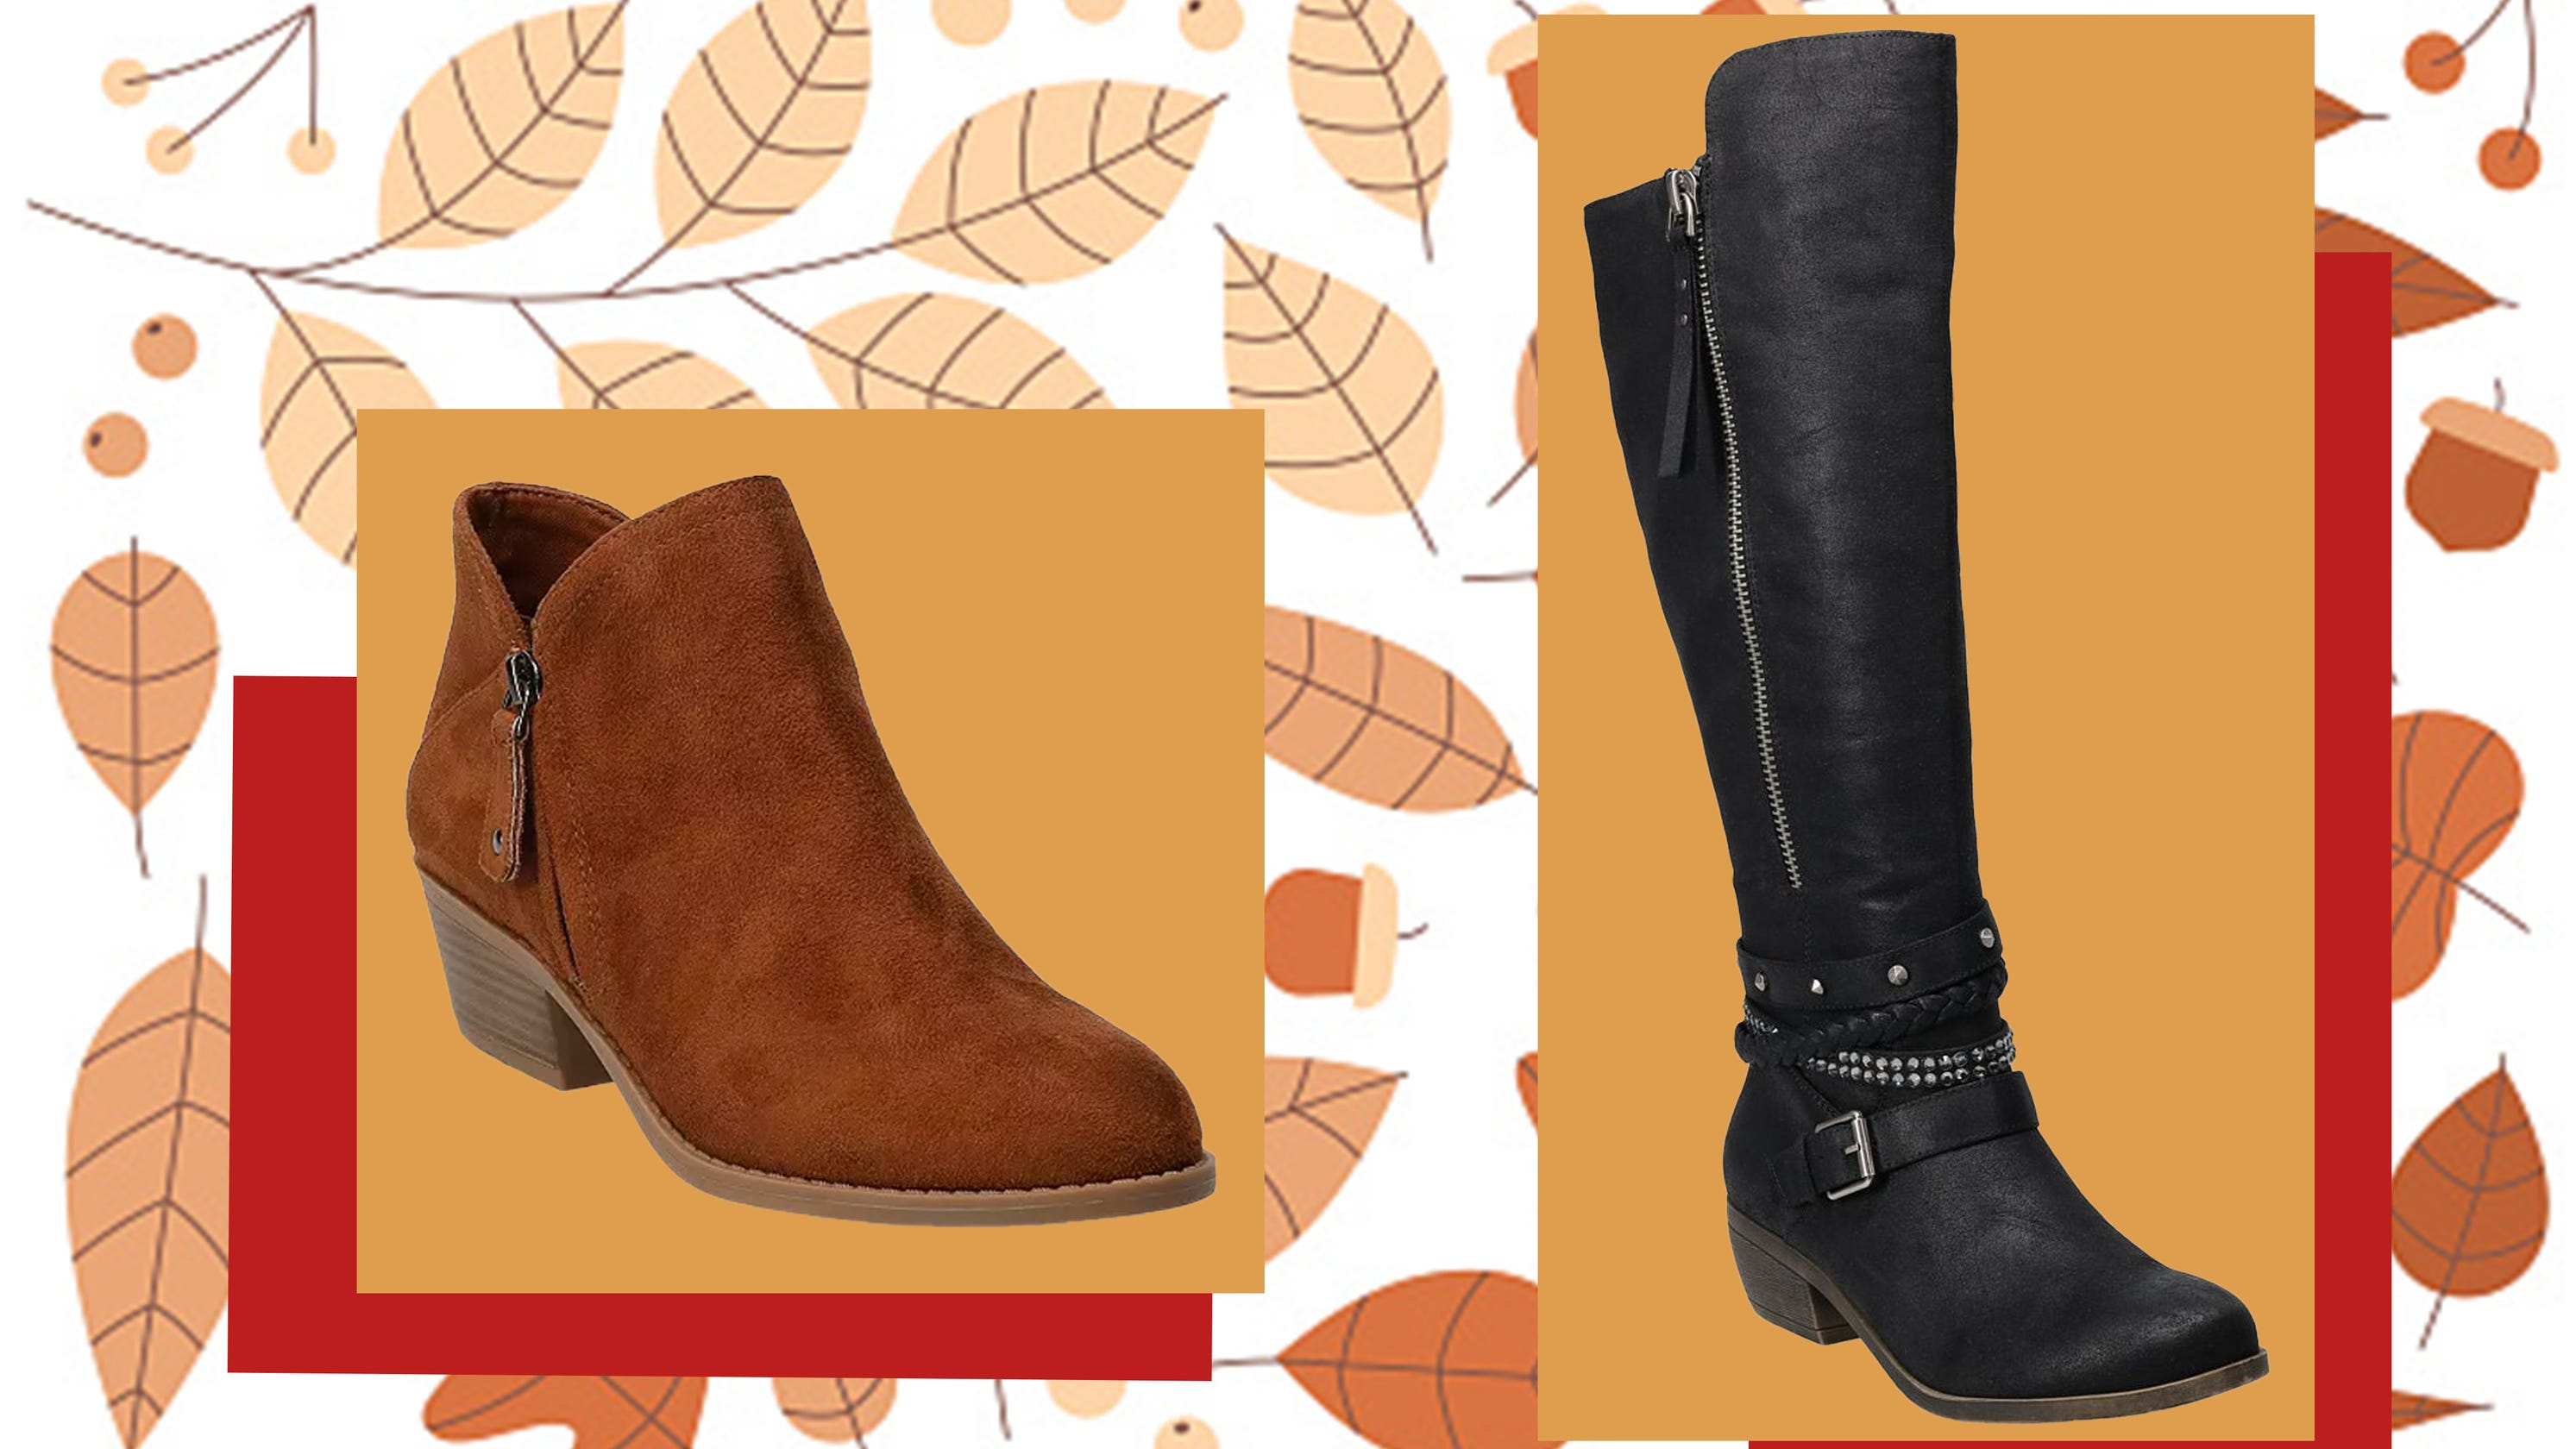 You can get women's fall boots for $20 this weekend at Kohl's